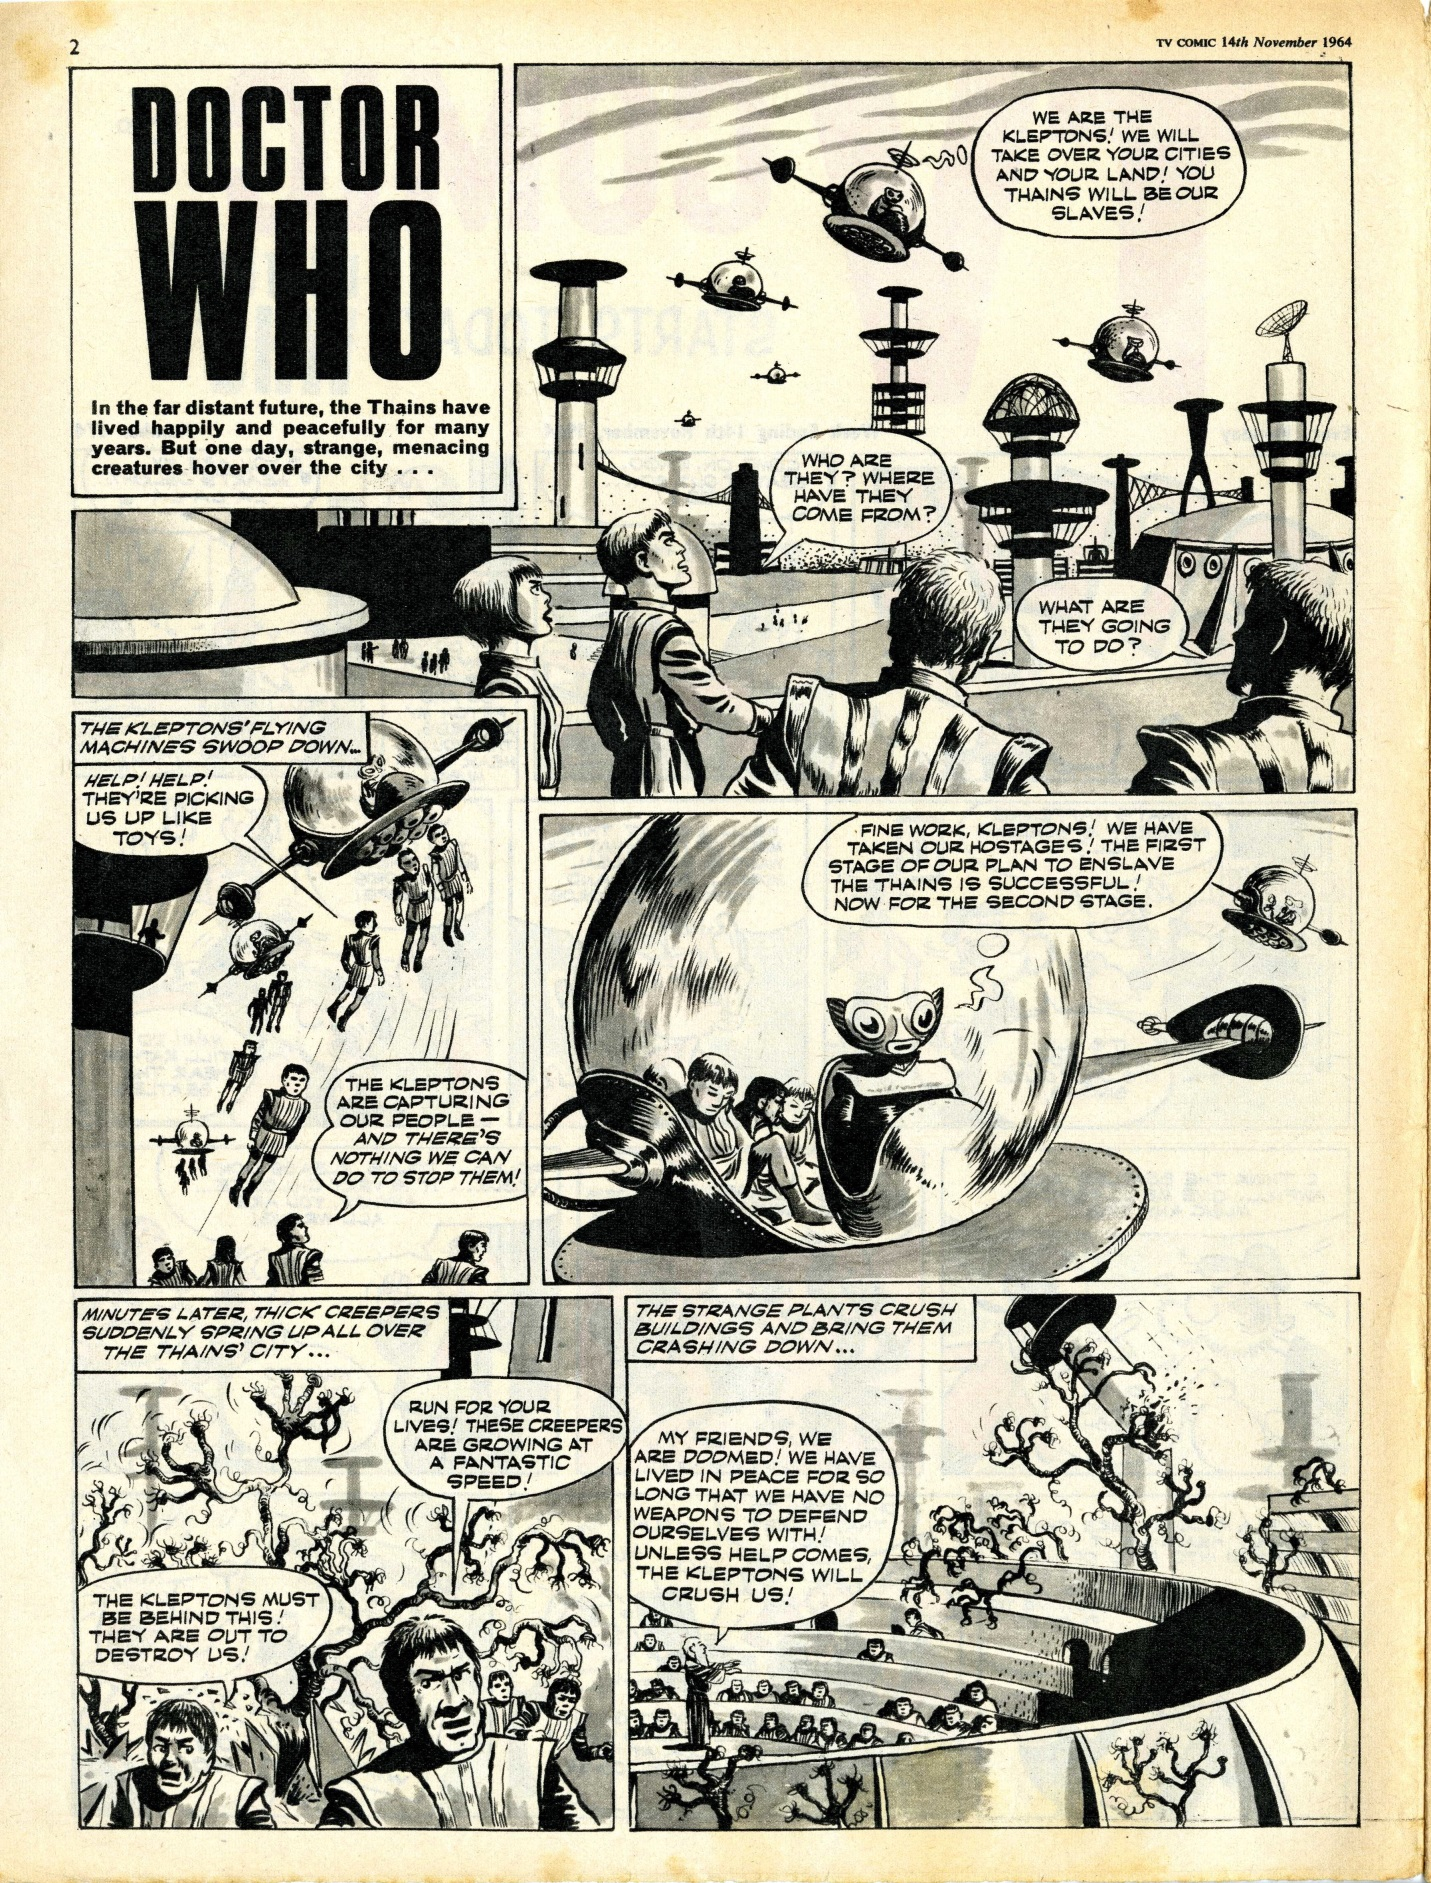 TV Comic No. 674, 14 November 1964, page 1 of The Klepton Parasites, which ran for 10 issues until 16 January 1965